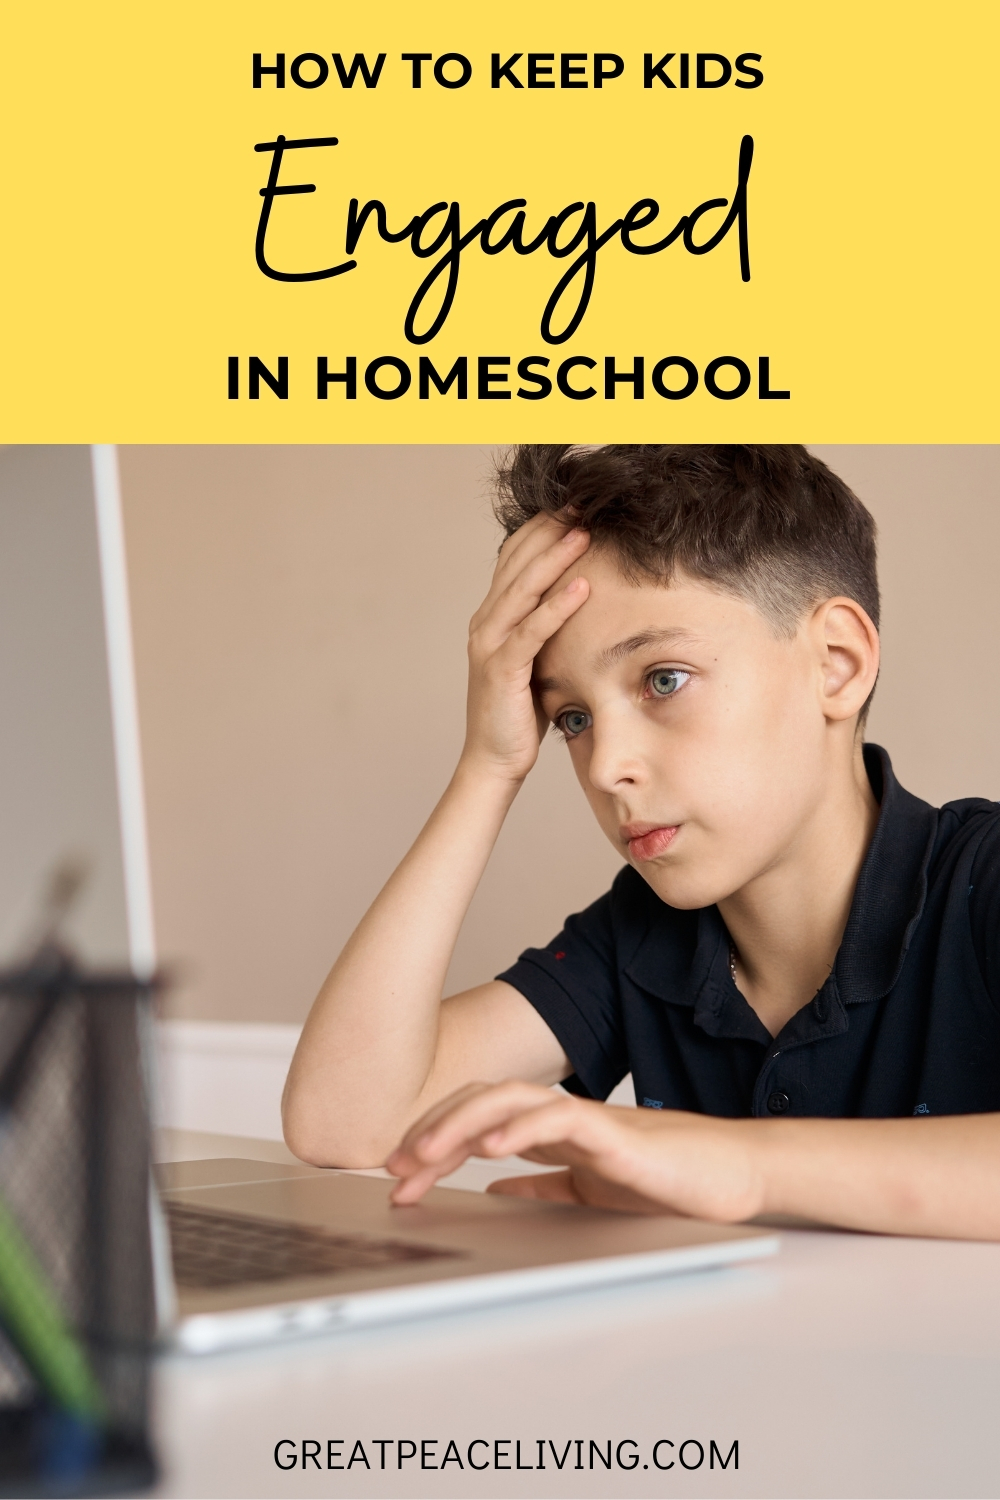 How to Keep Kids Engaged In Homeschooling | GreatPeaceLiving.com